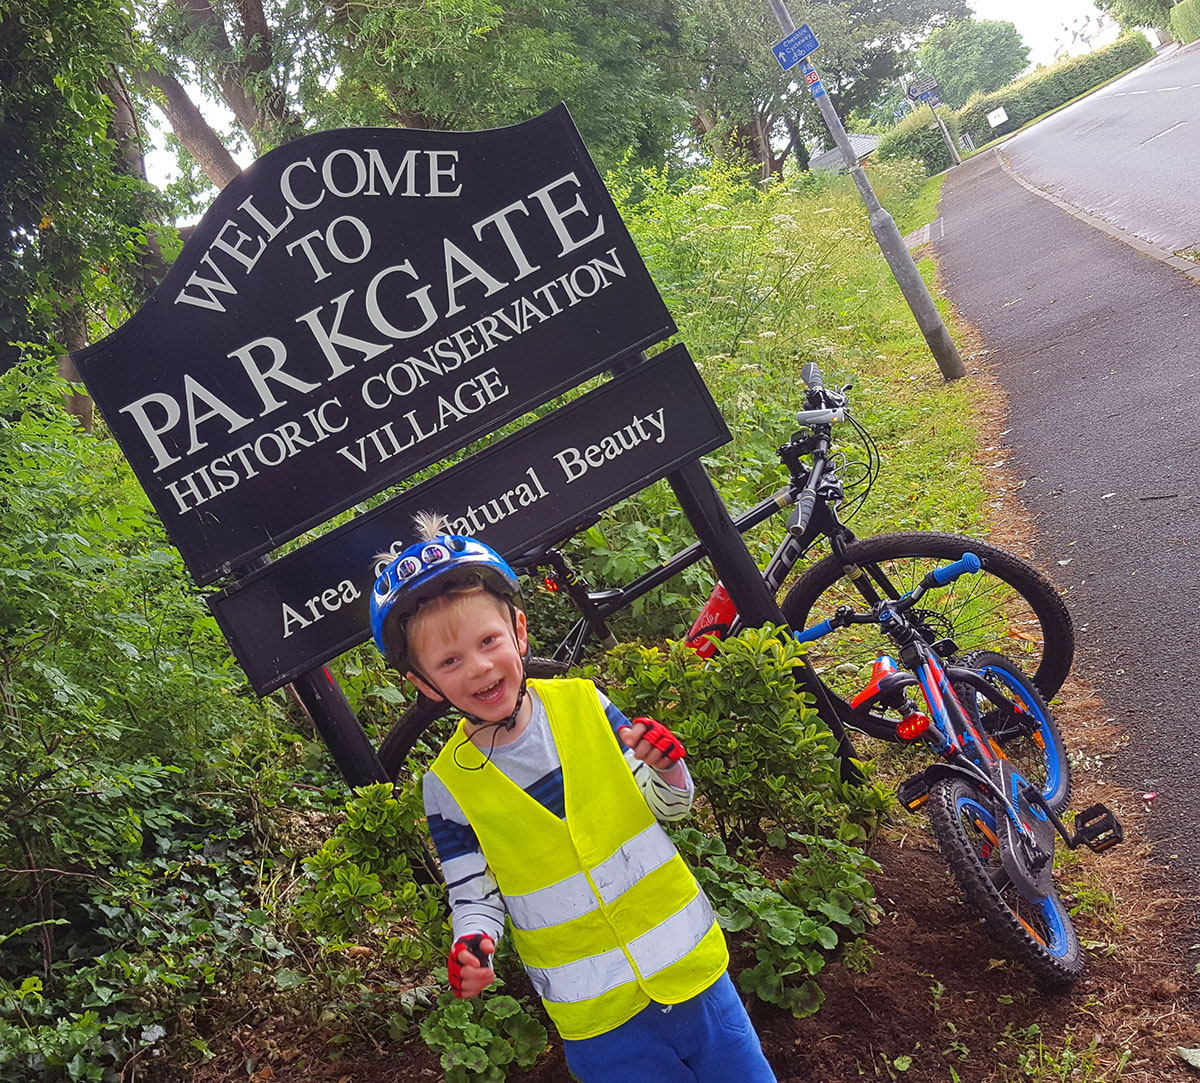 Parkgate welcome sign